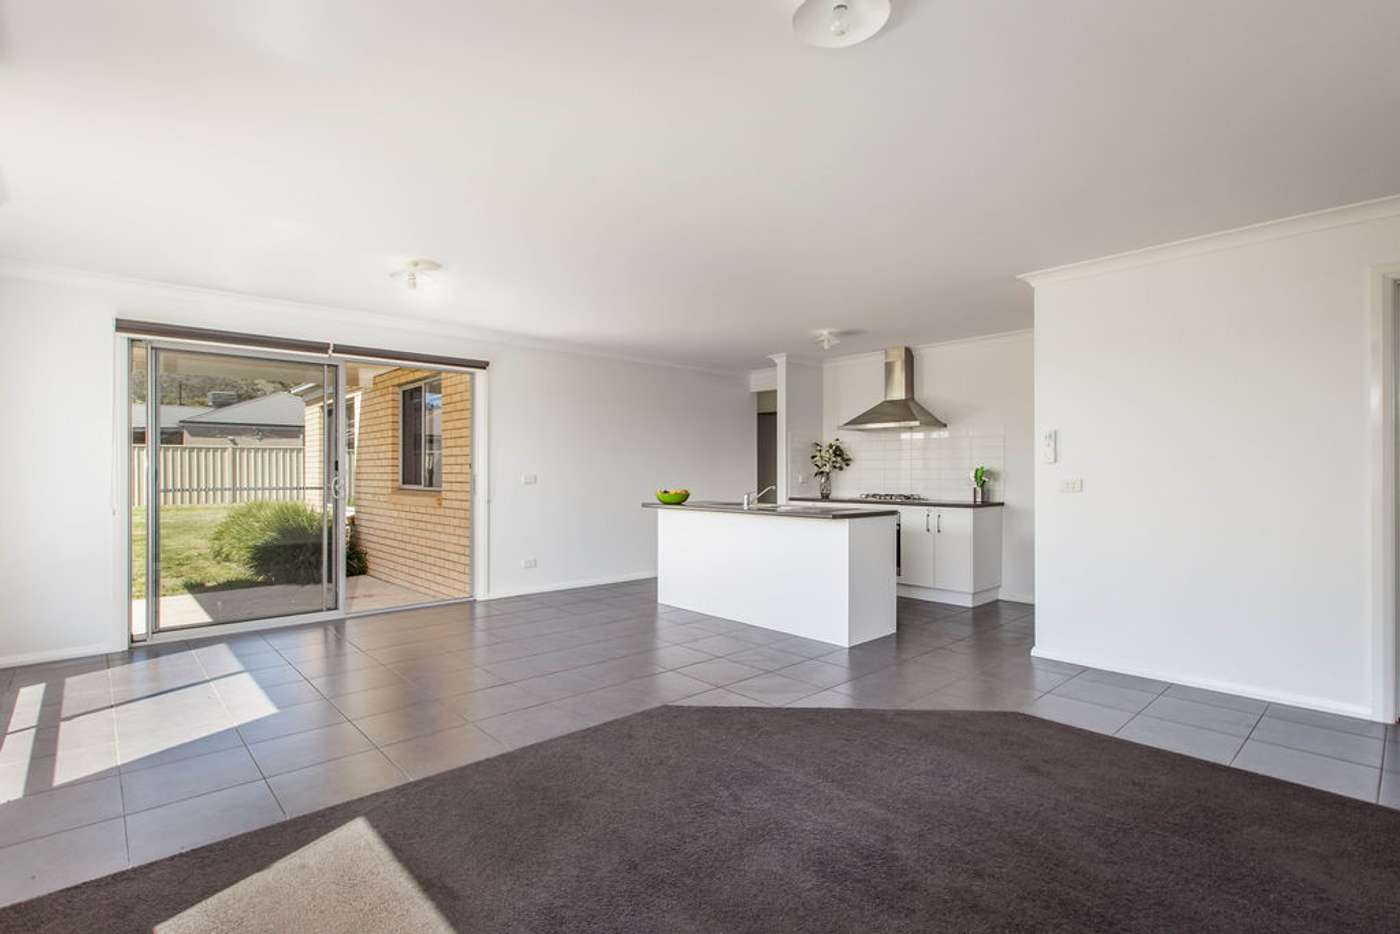 Fifth view of Homely house listing, 13 Mackey Street, Wodonga VIC 3690